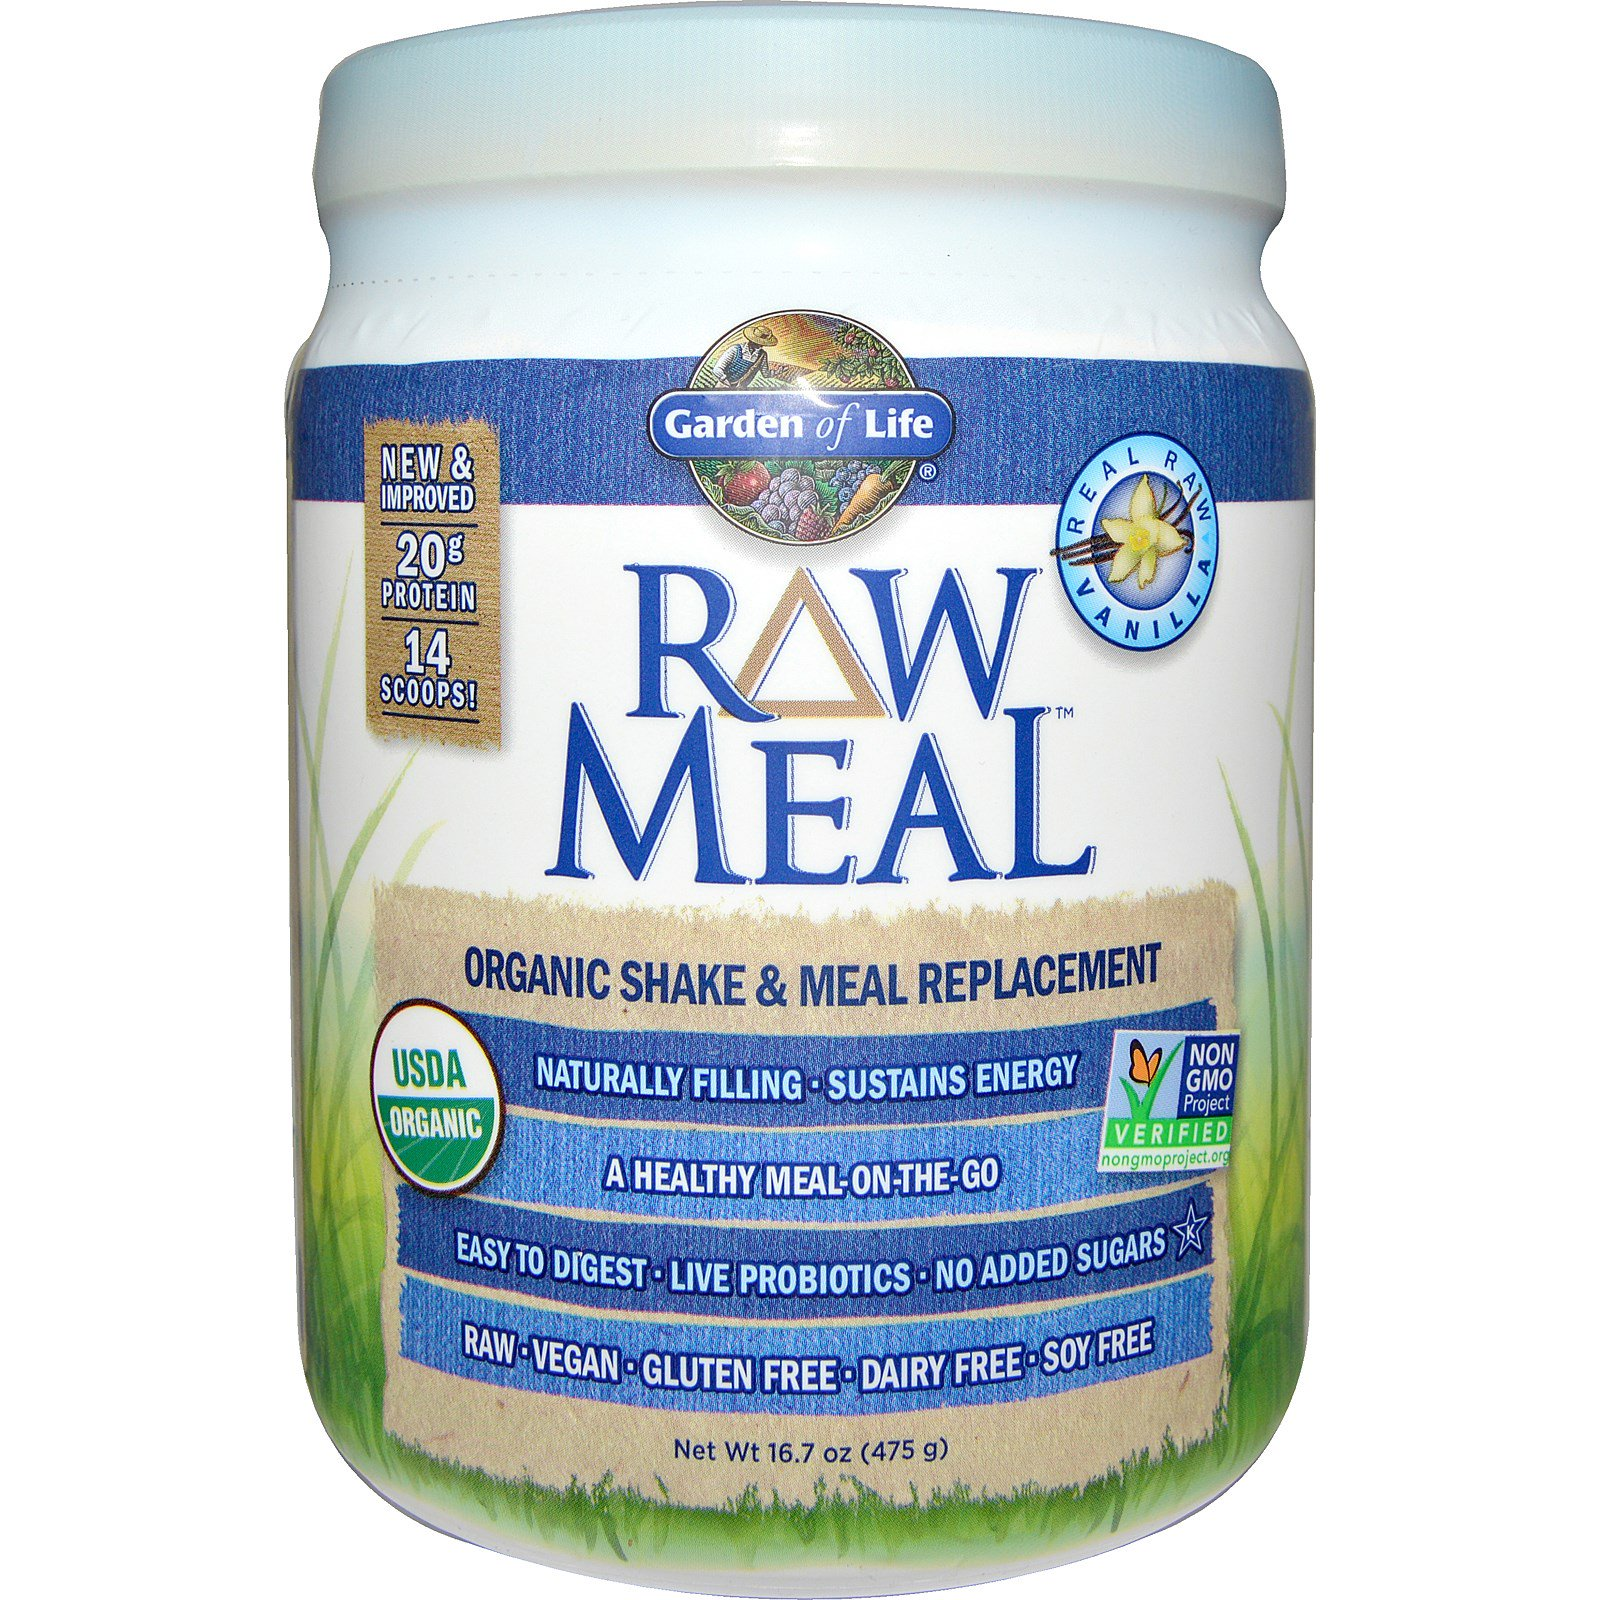 raw organic meal replacement reviews